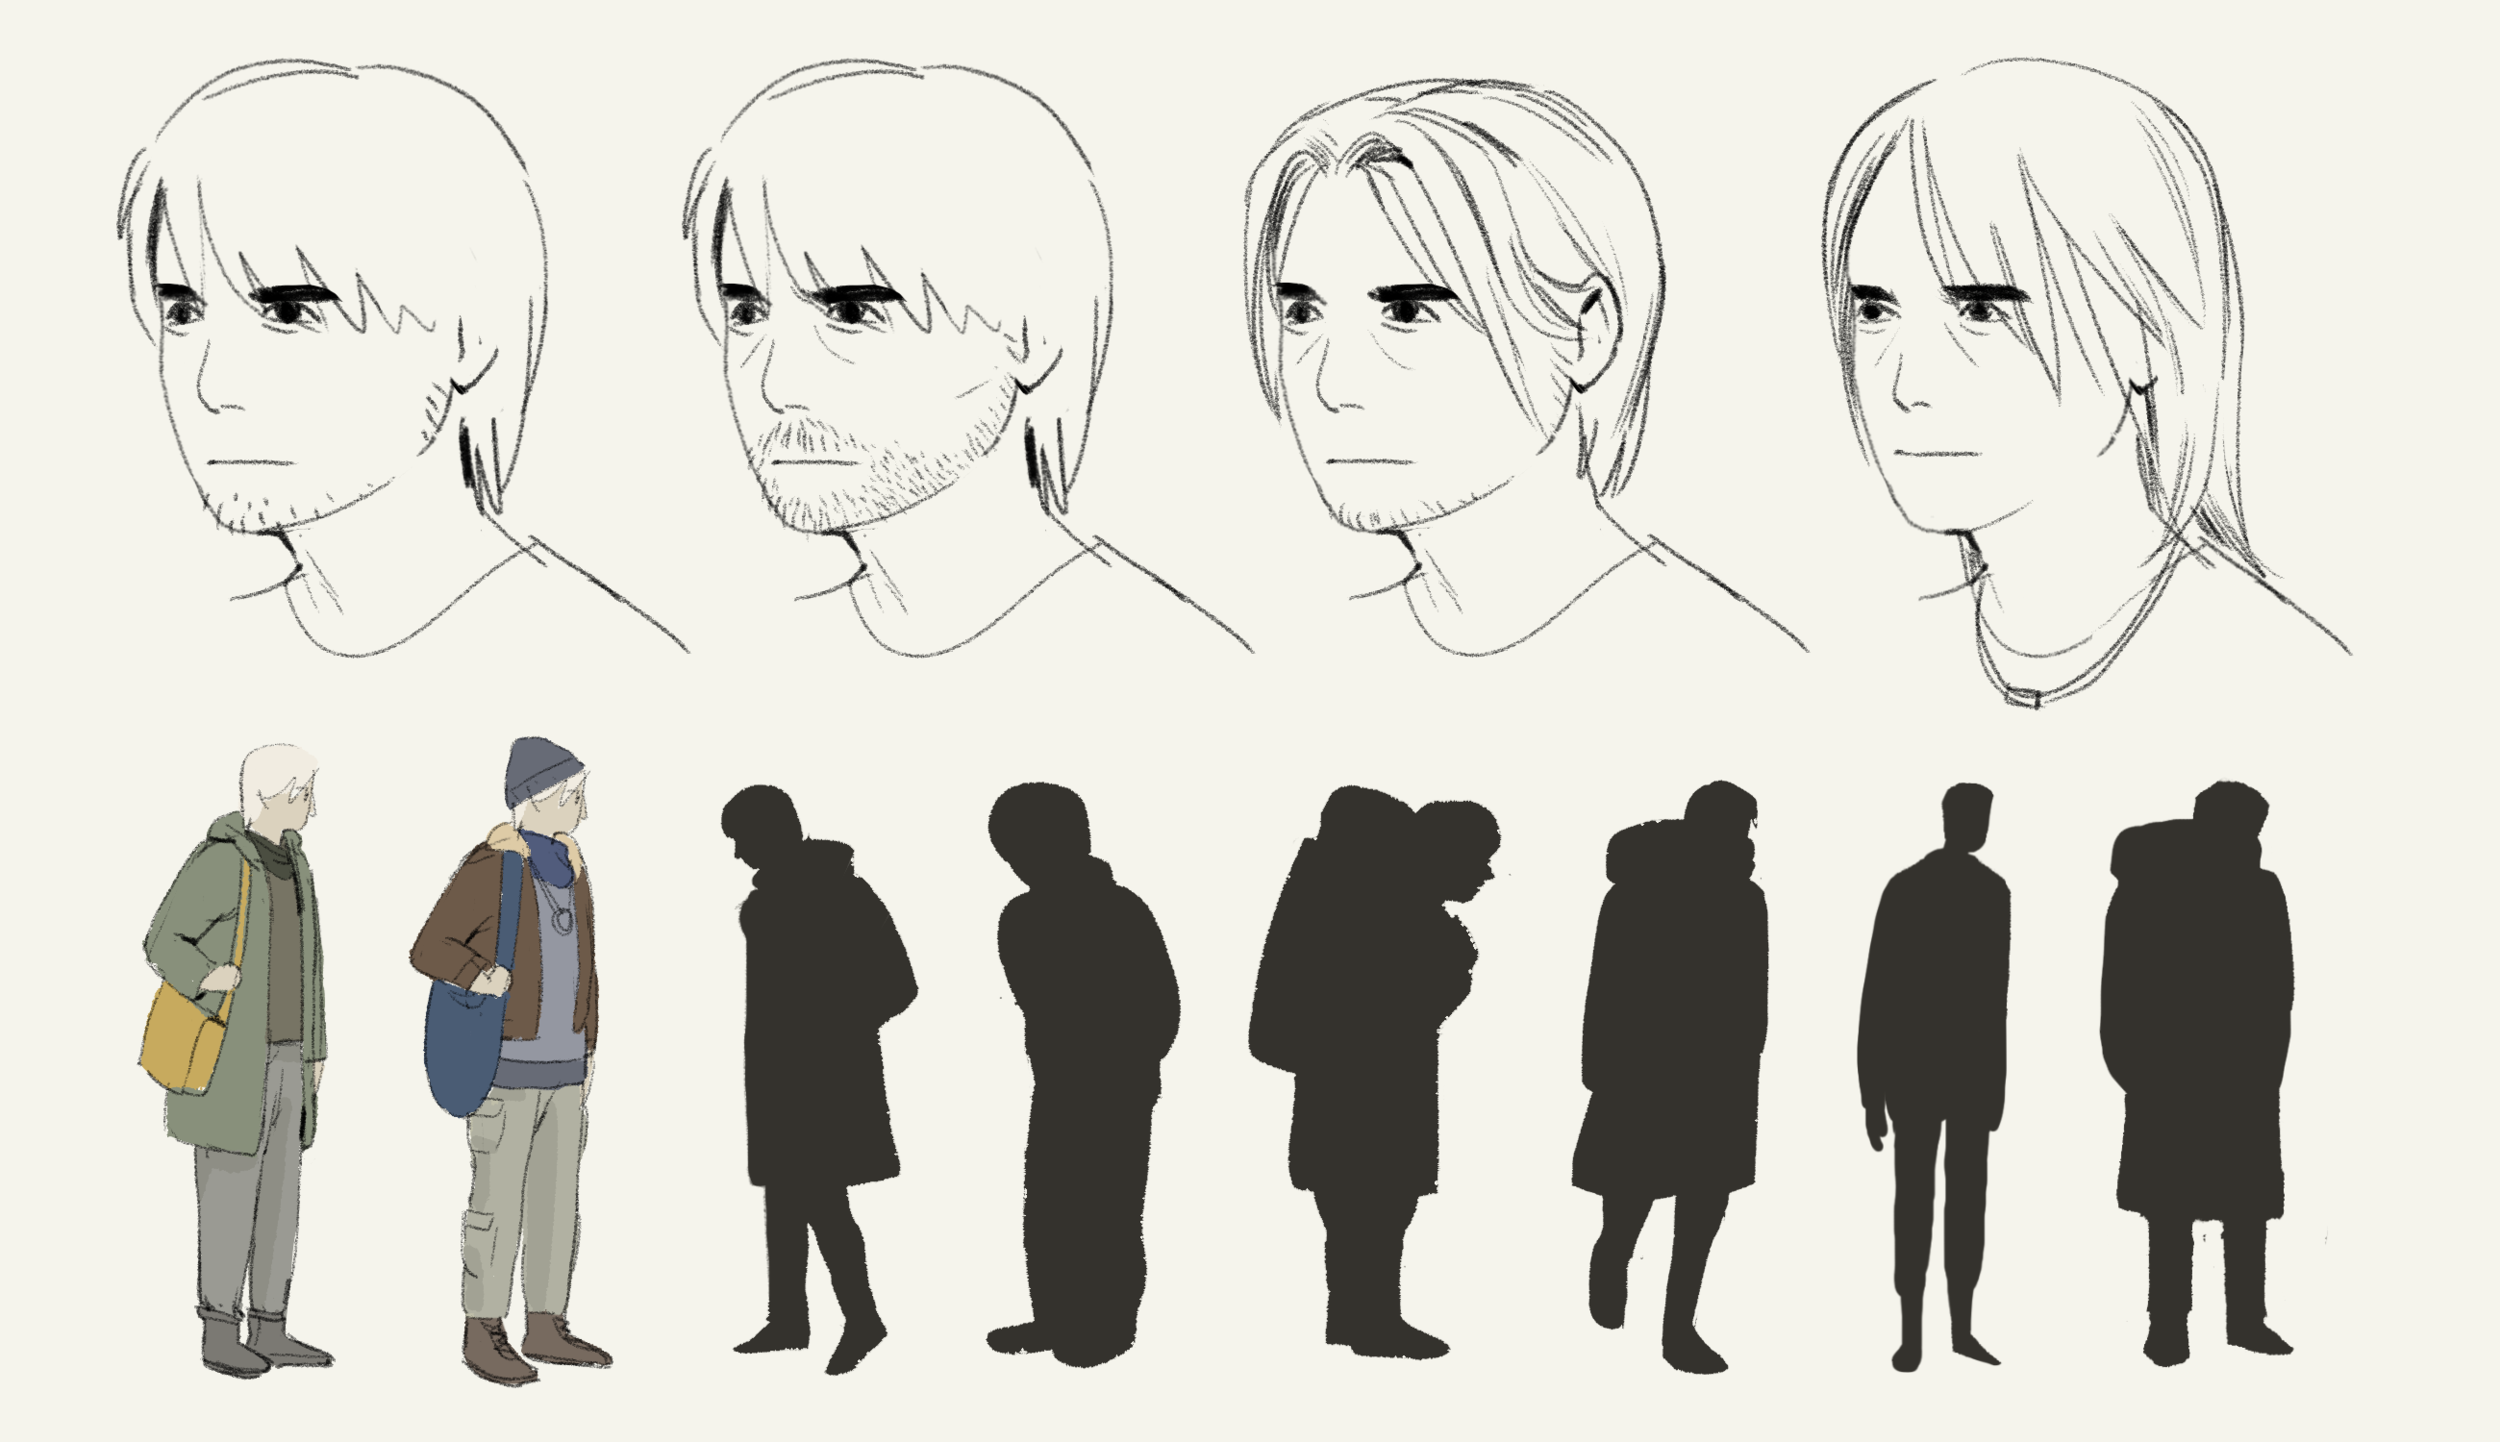 201612211902 char designs.png